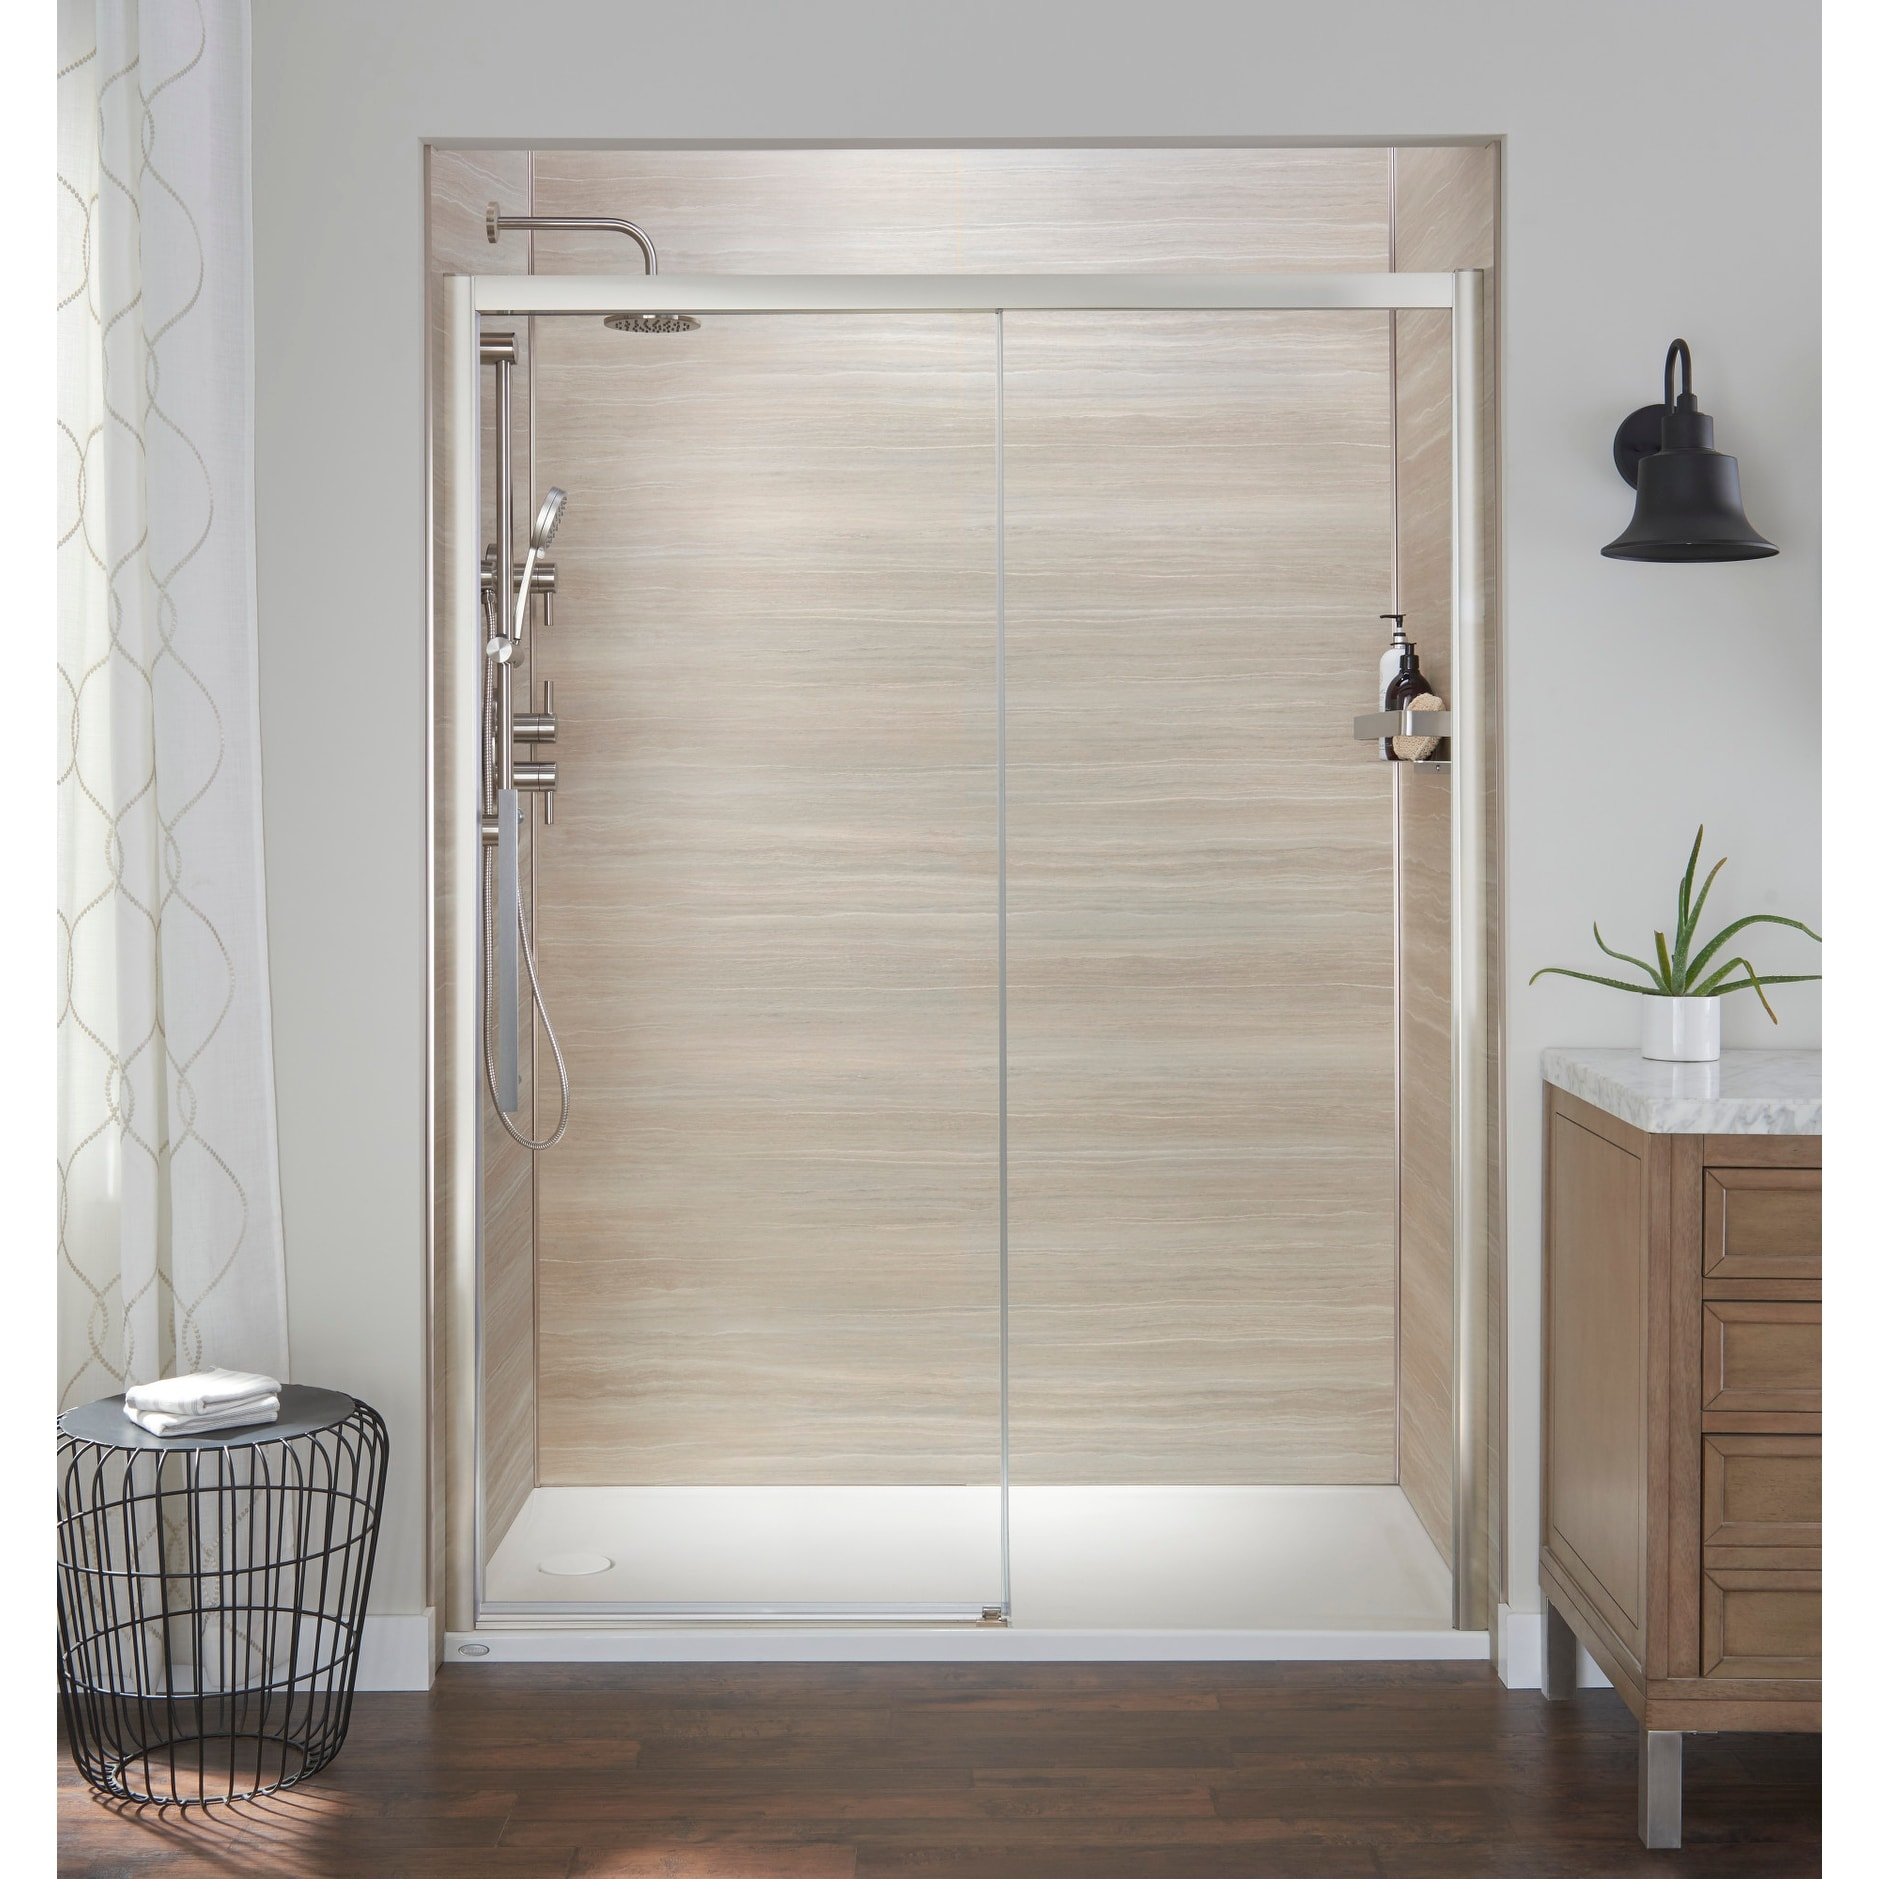 Jacuzzi Sd48 76 High X 48 Wide Sliding Semi Frameless Shower Door With Clear Glass